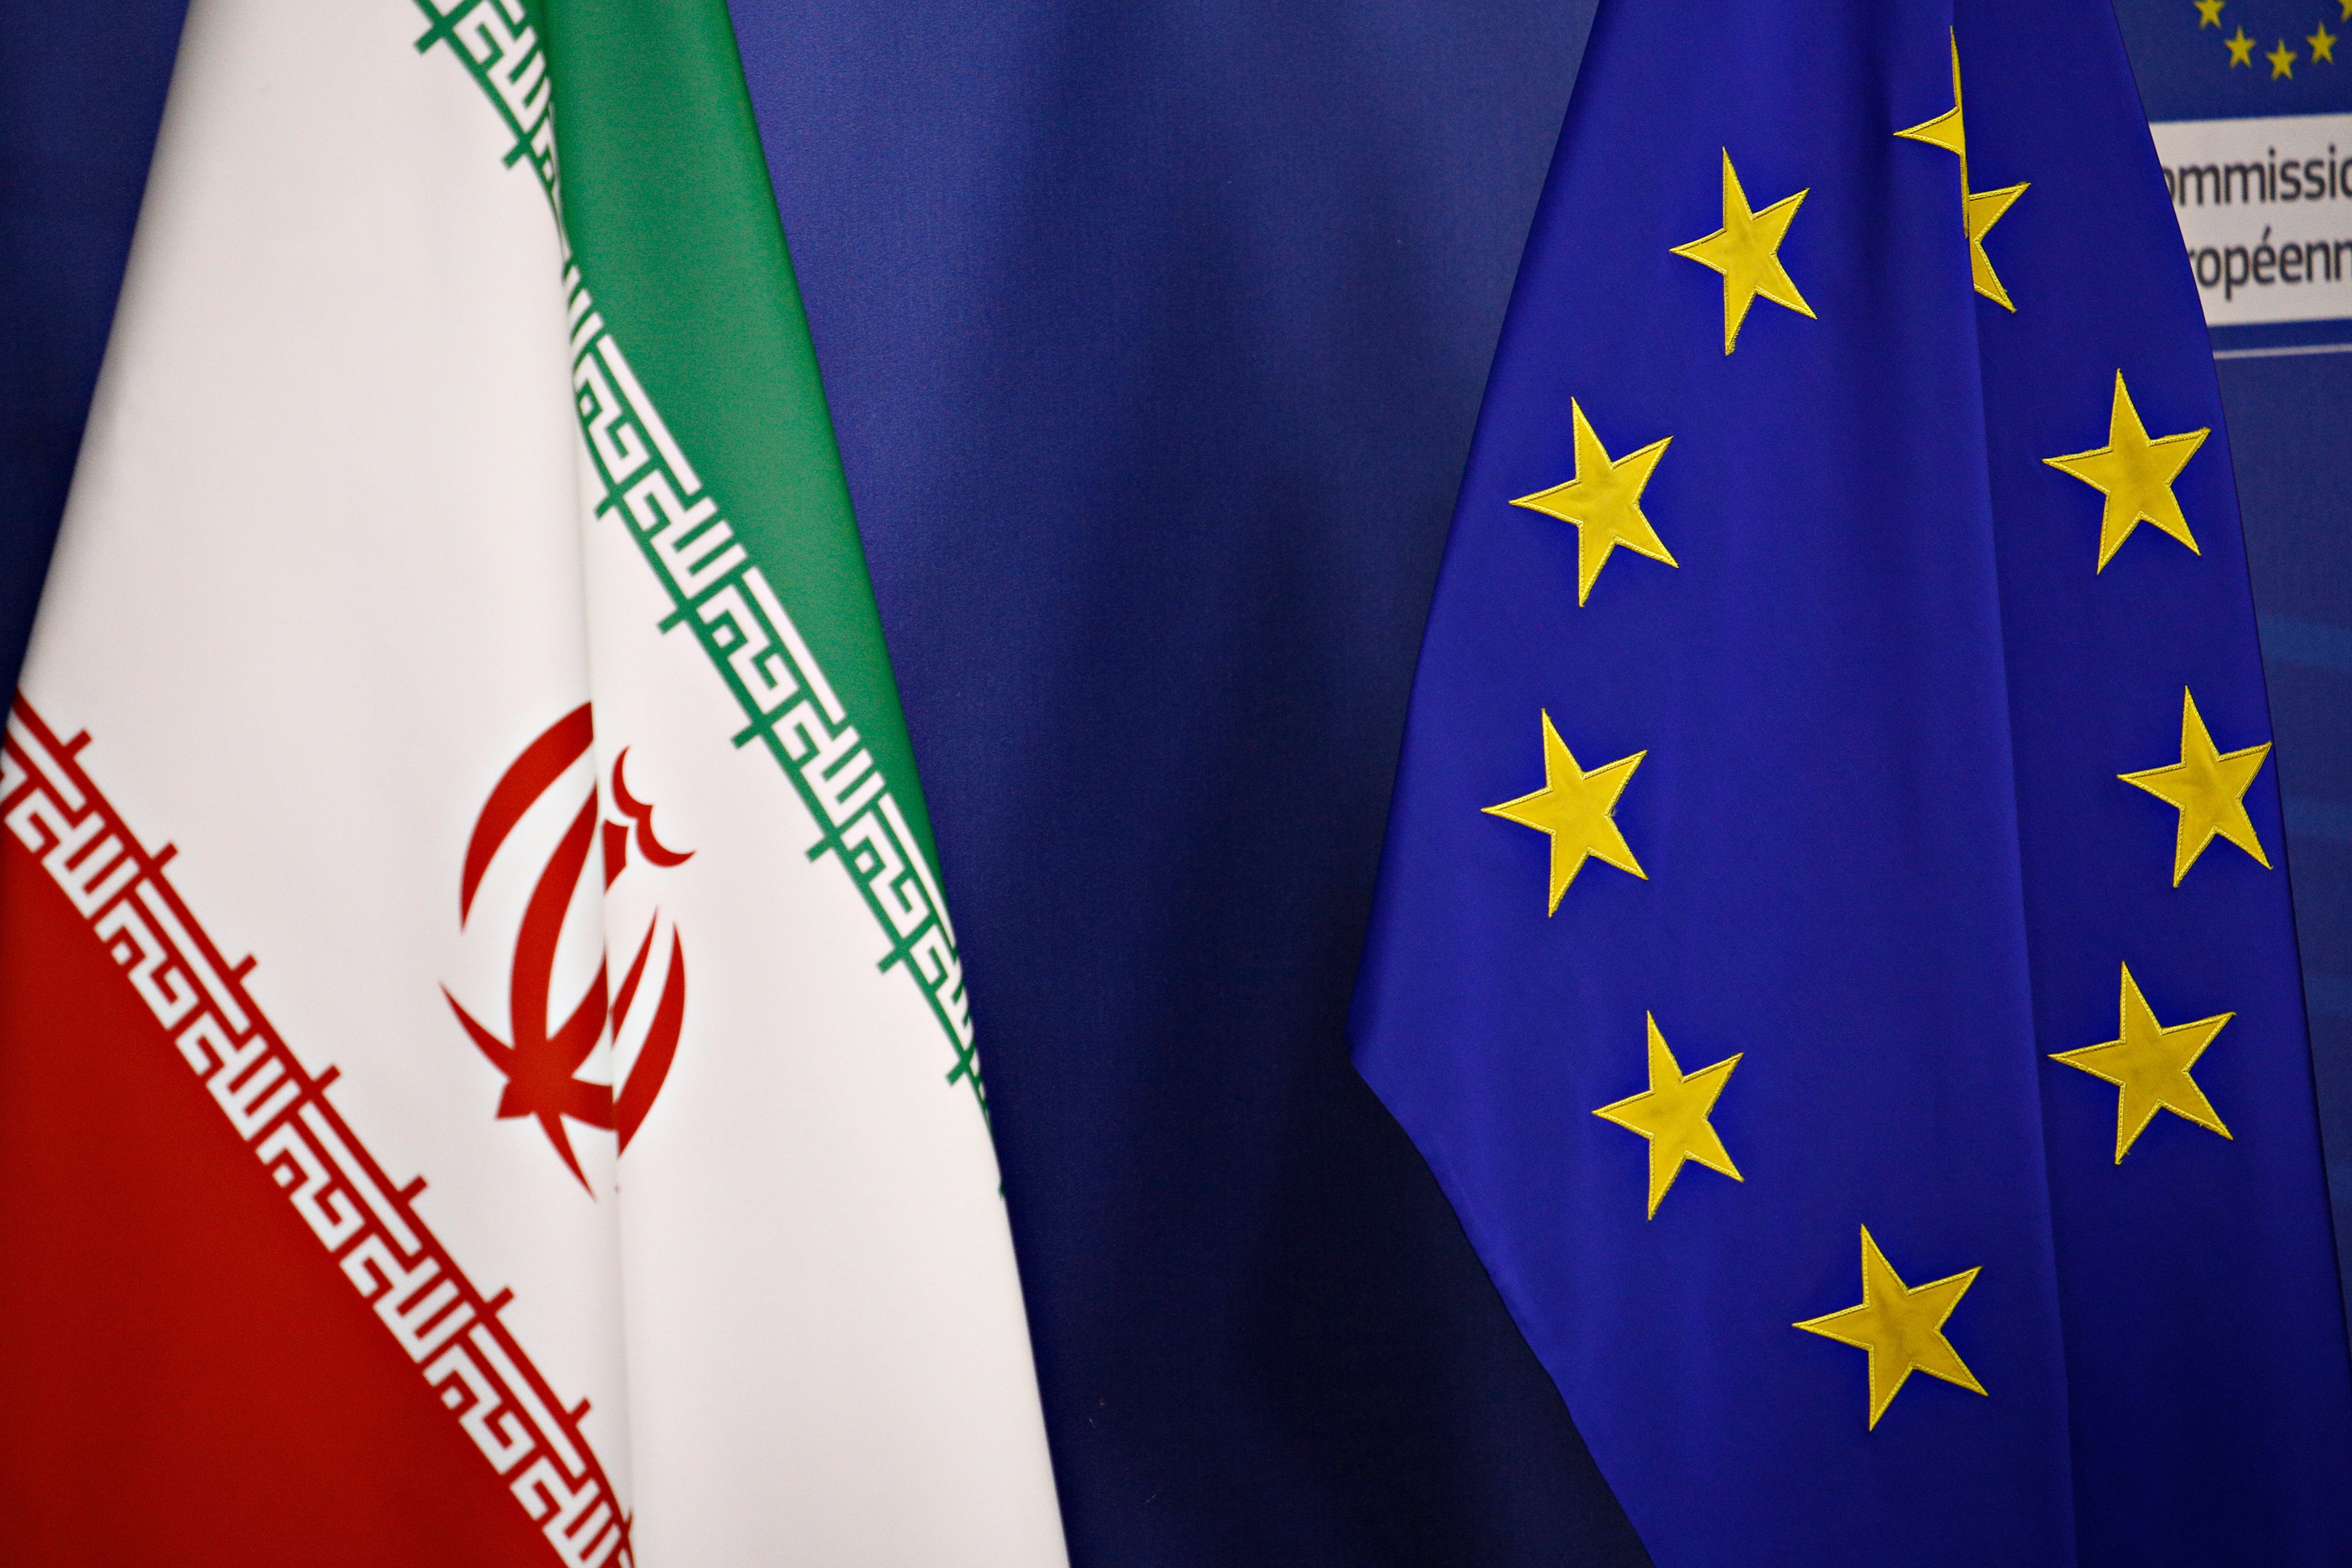 Parliament set to call for fresh EU approach on Iran